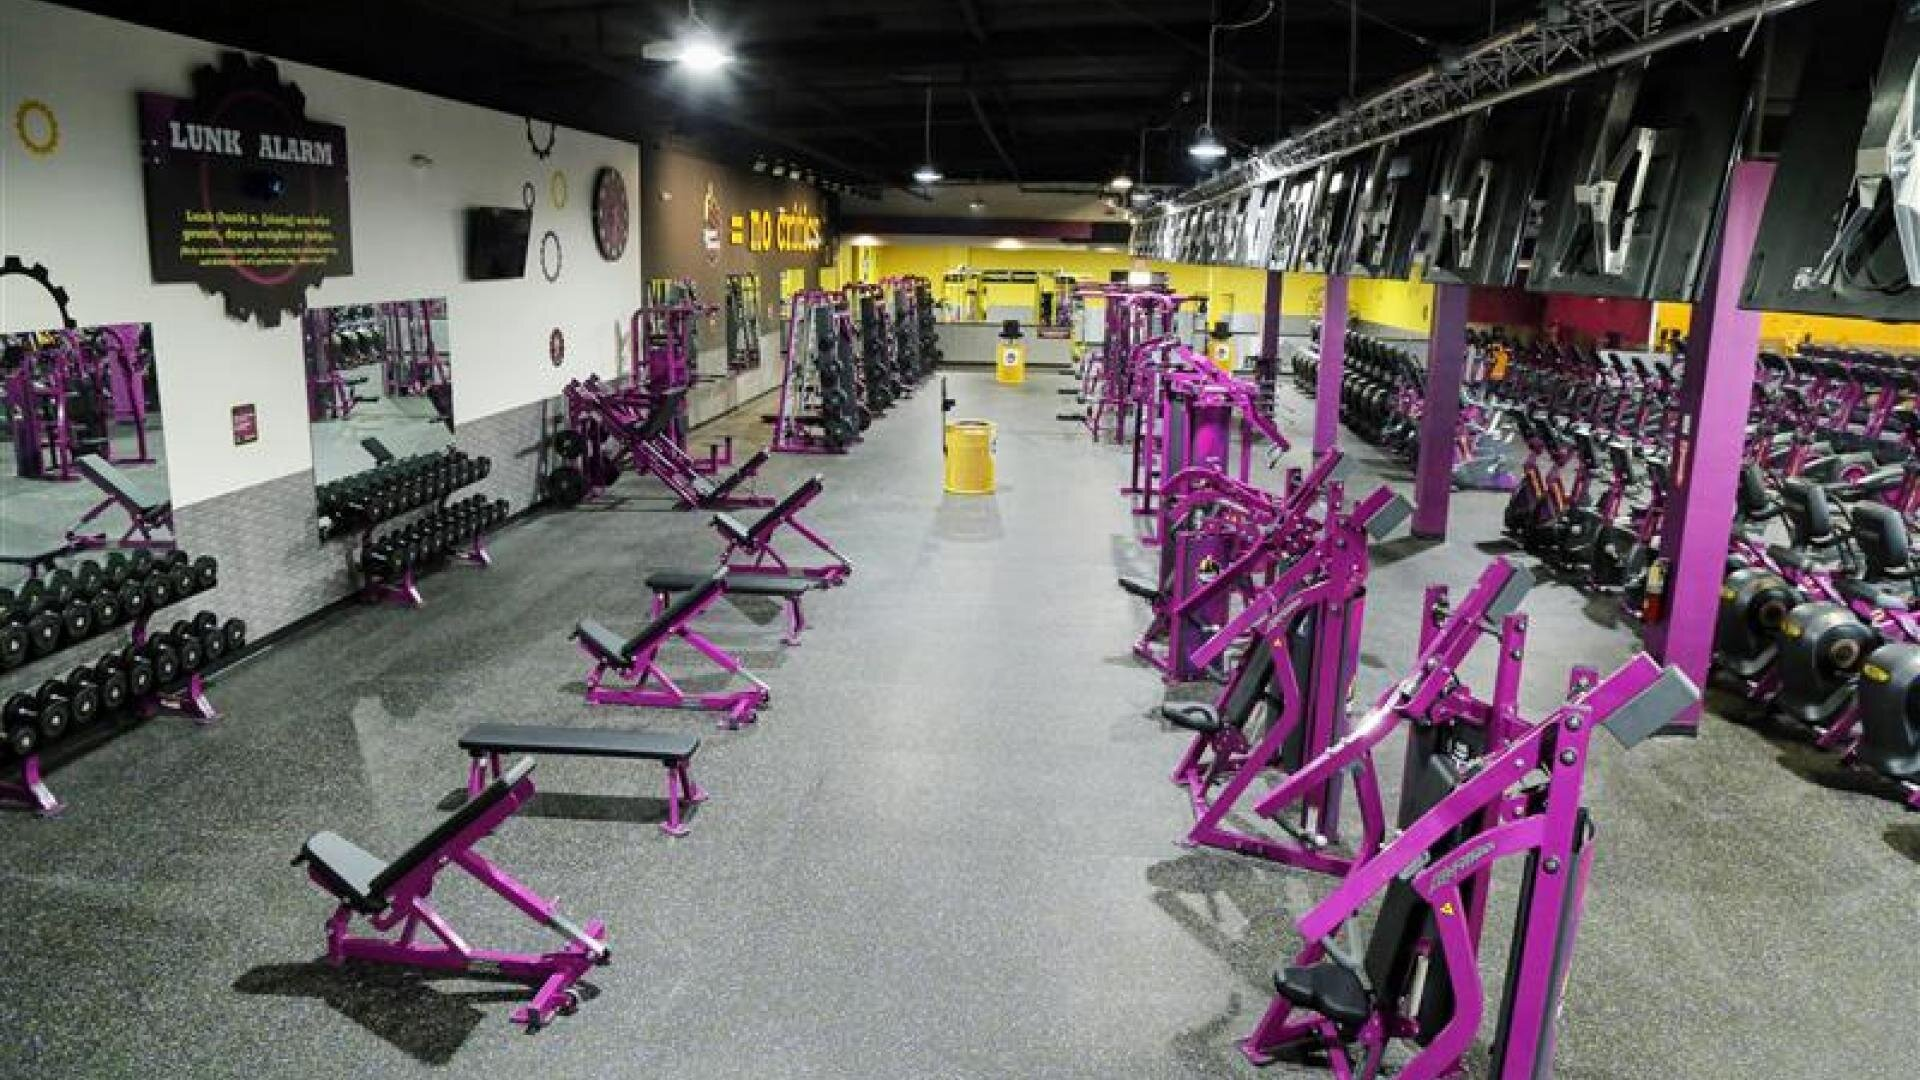 Image courtesy of Planet Fitness, Visalia, CA branch.